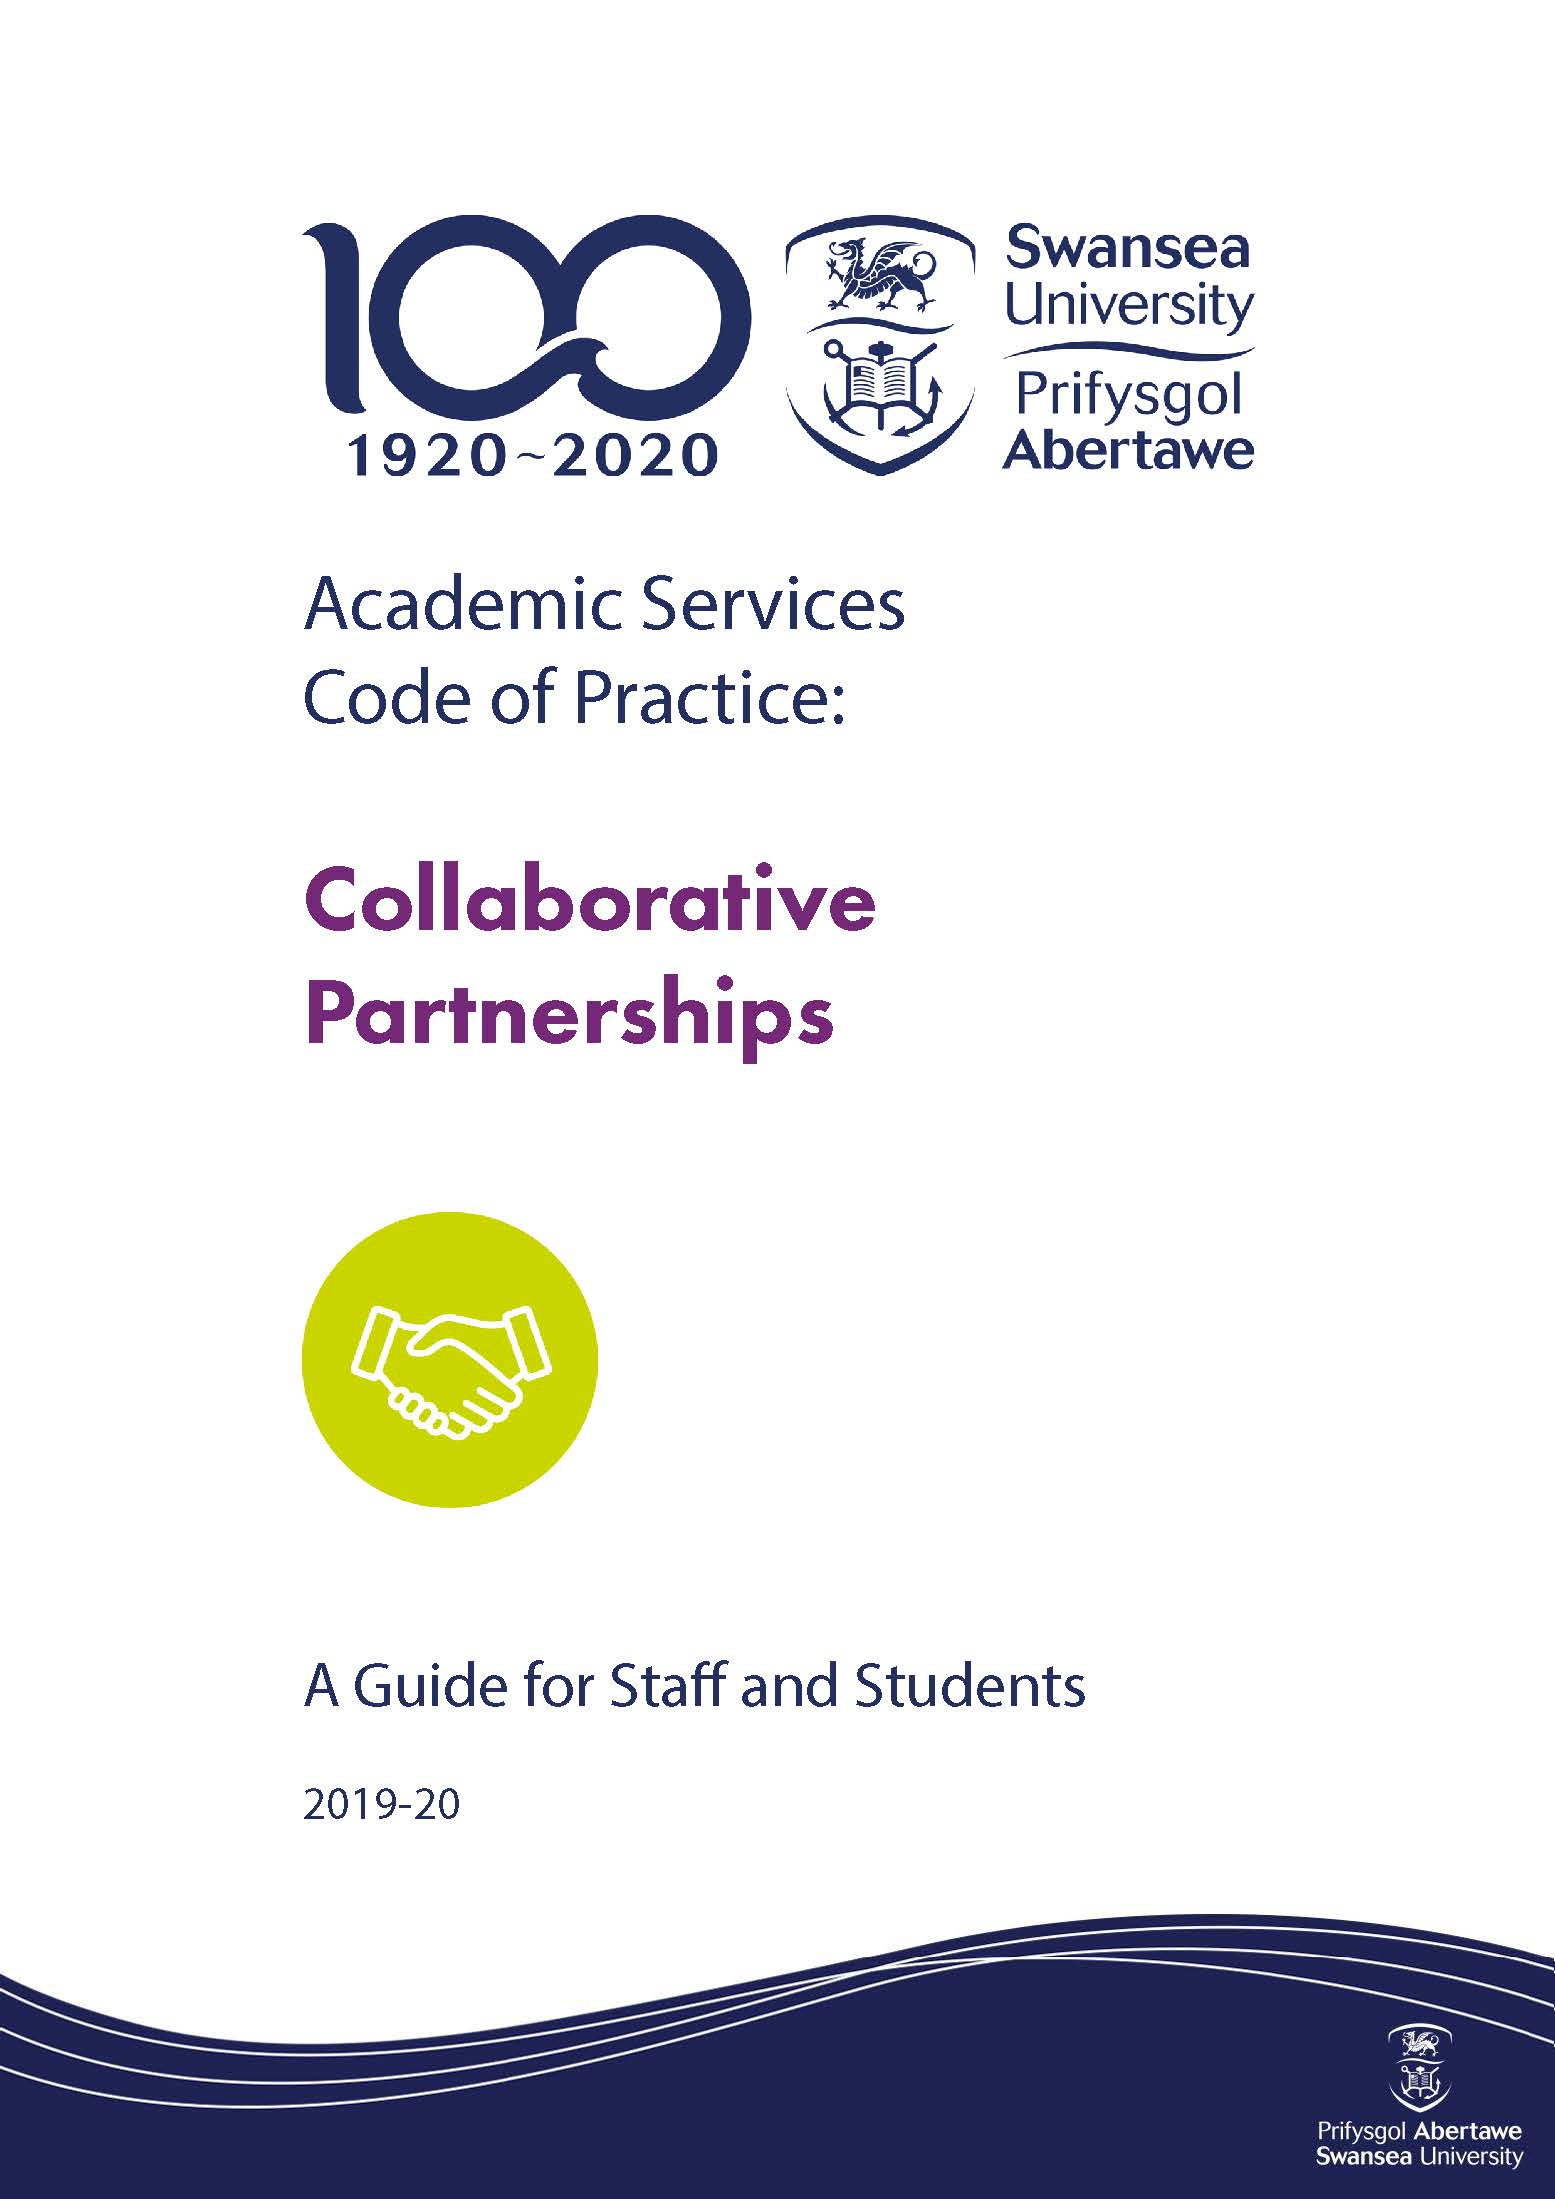 Code of Practice: Collaborative Partnerships